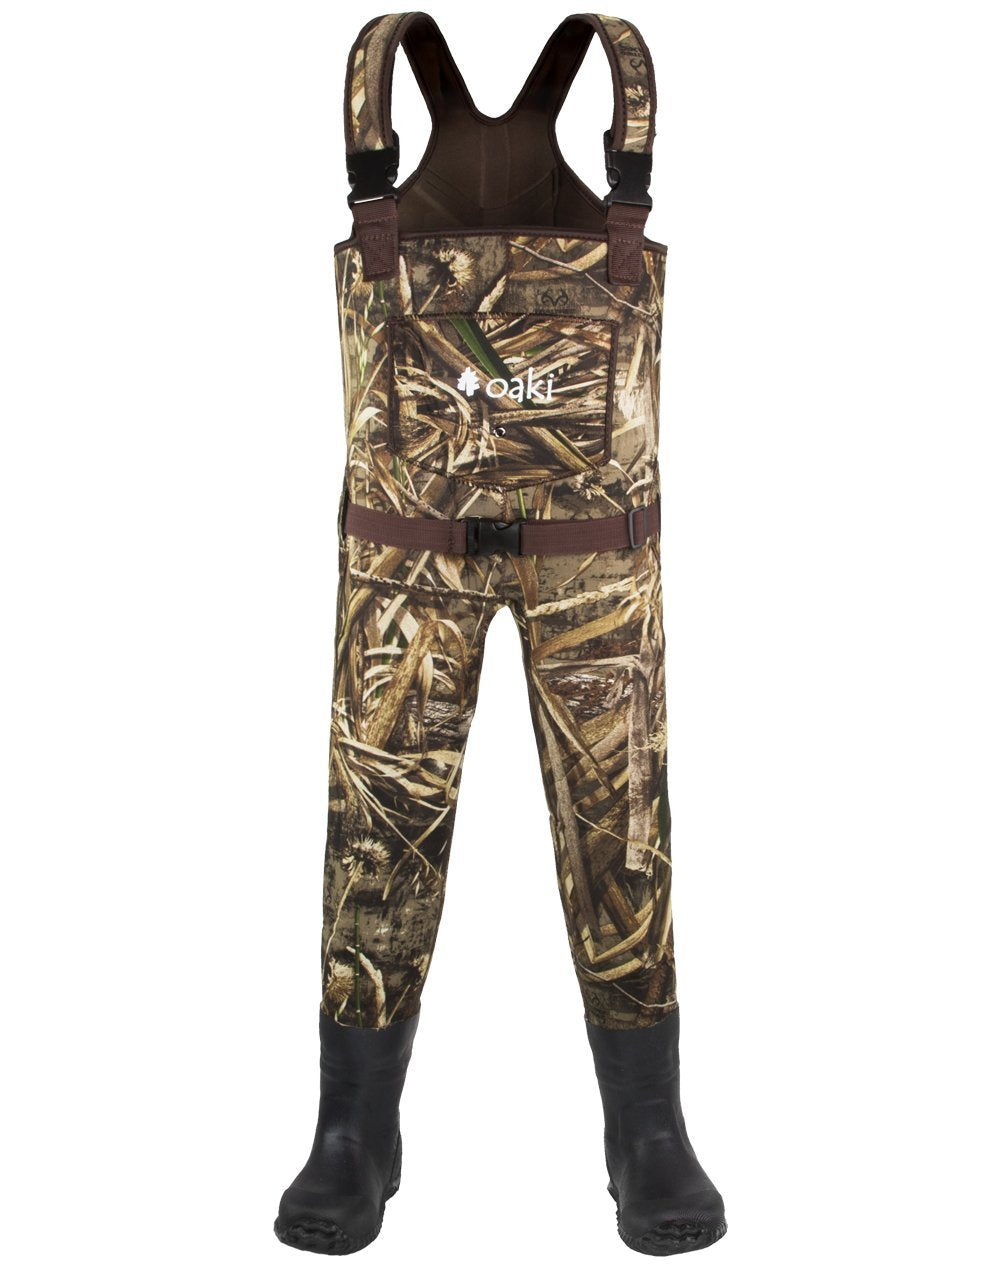 Kids Realtree Max 5® Camo Neoprene Waders (Pre-Order Only, Ships August 15th)